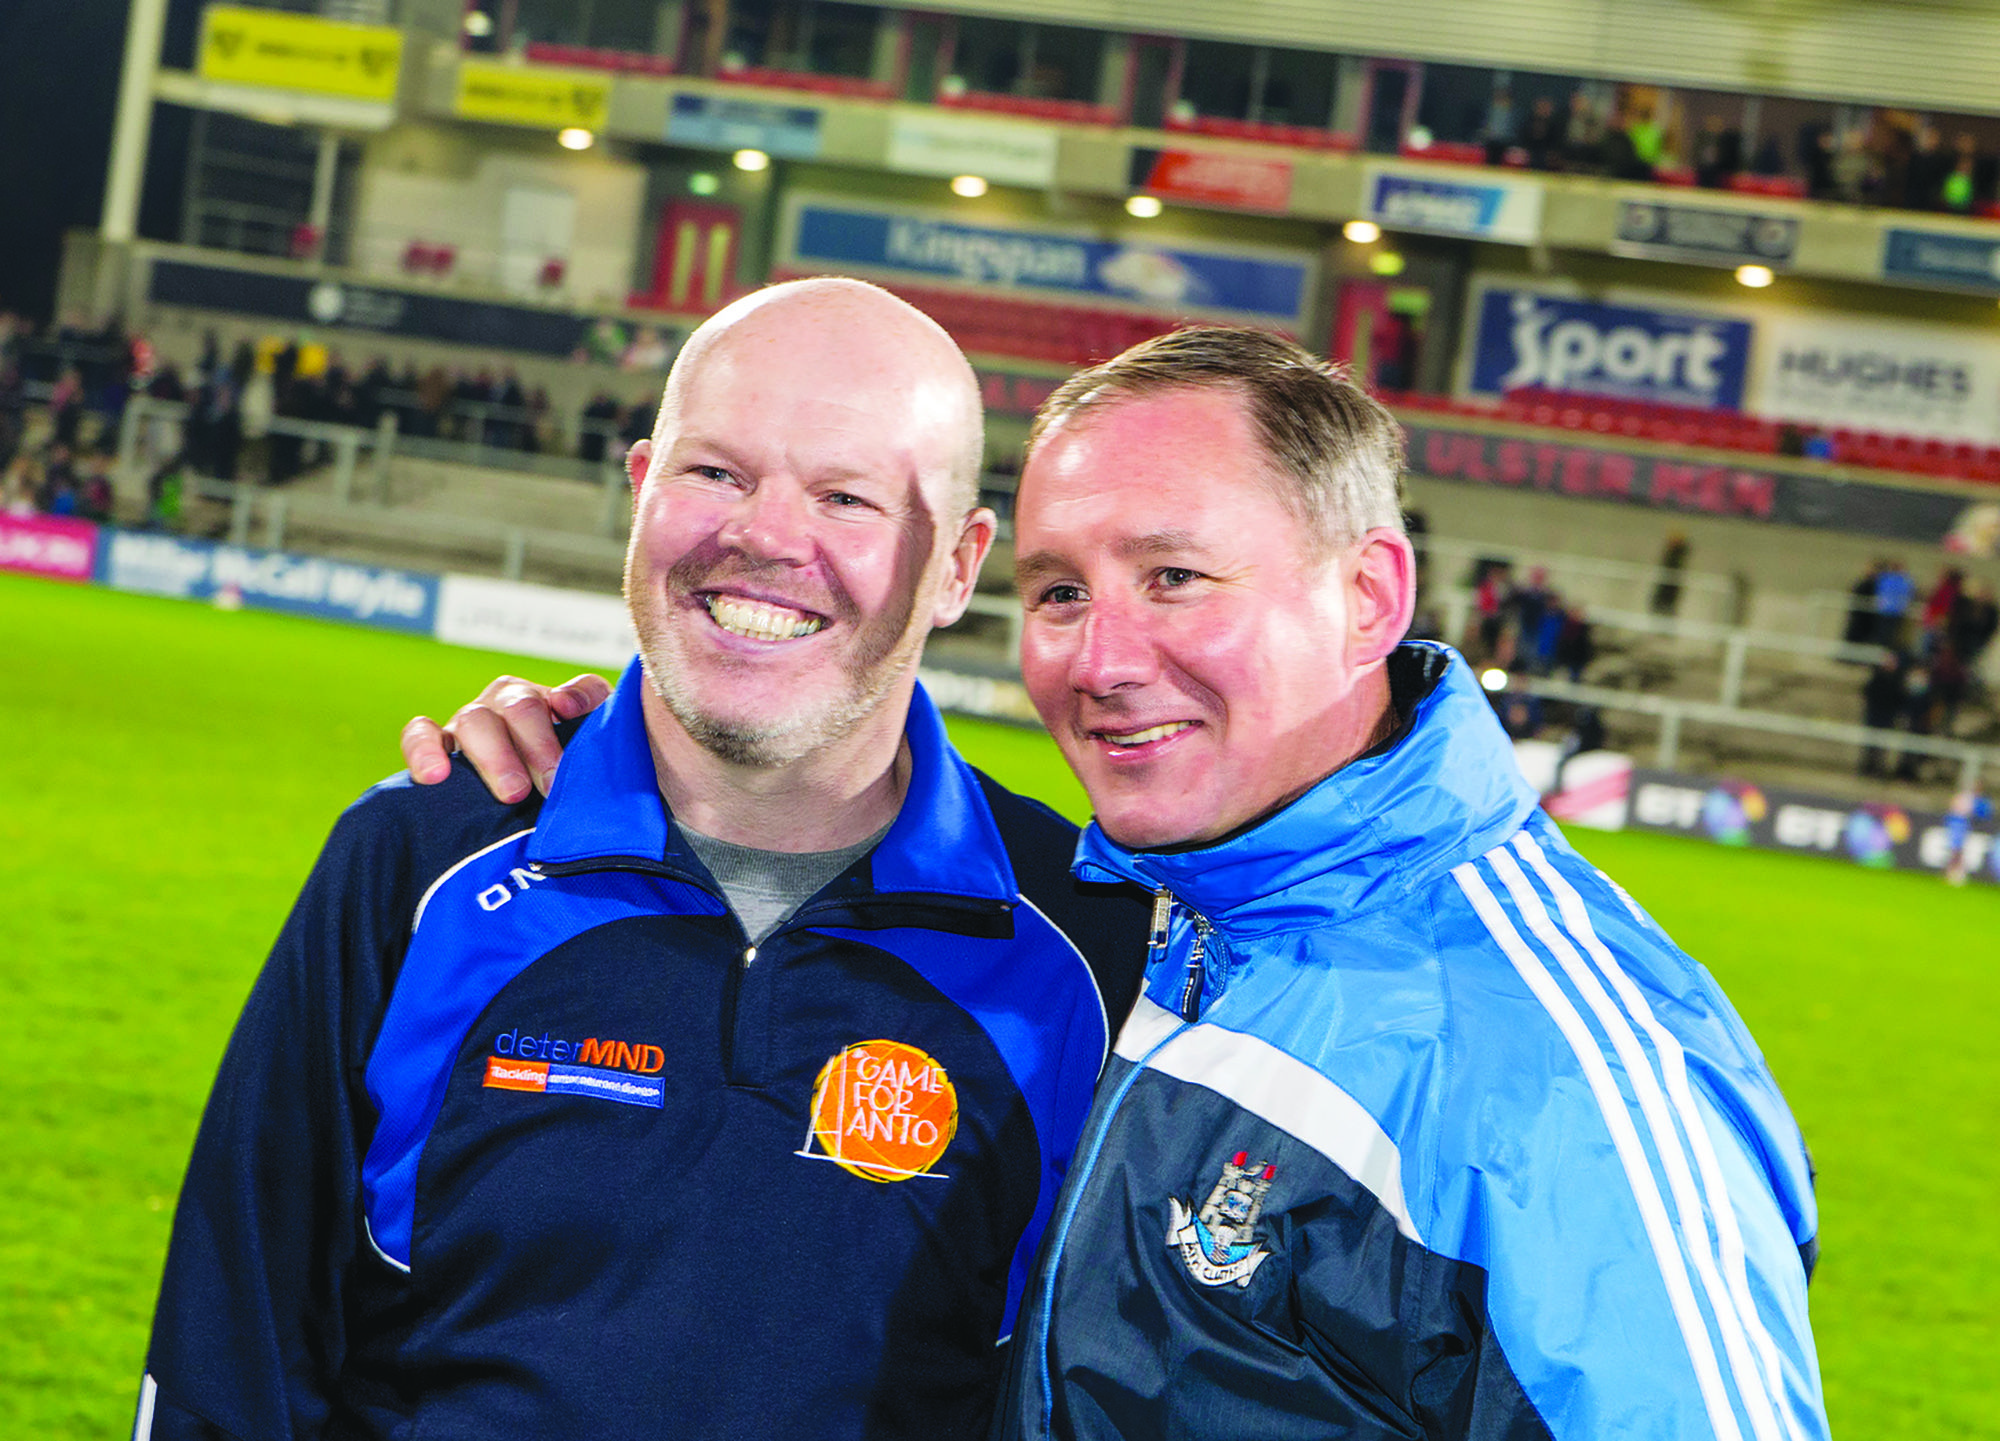 Former Dublin football manager Jim Gavin with Anto Finnegan at the 'Game for Anto' at Kingspan Stadium in 2014